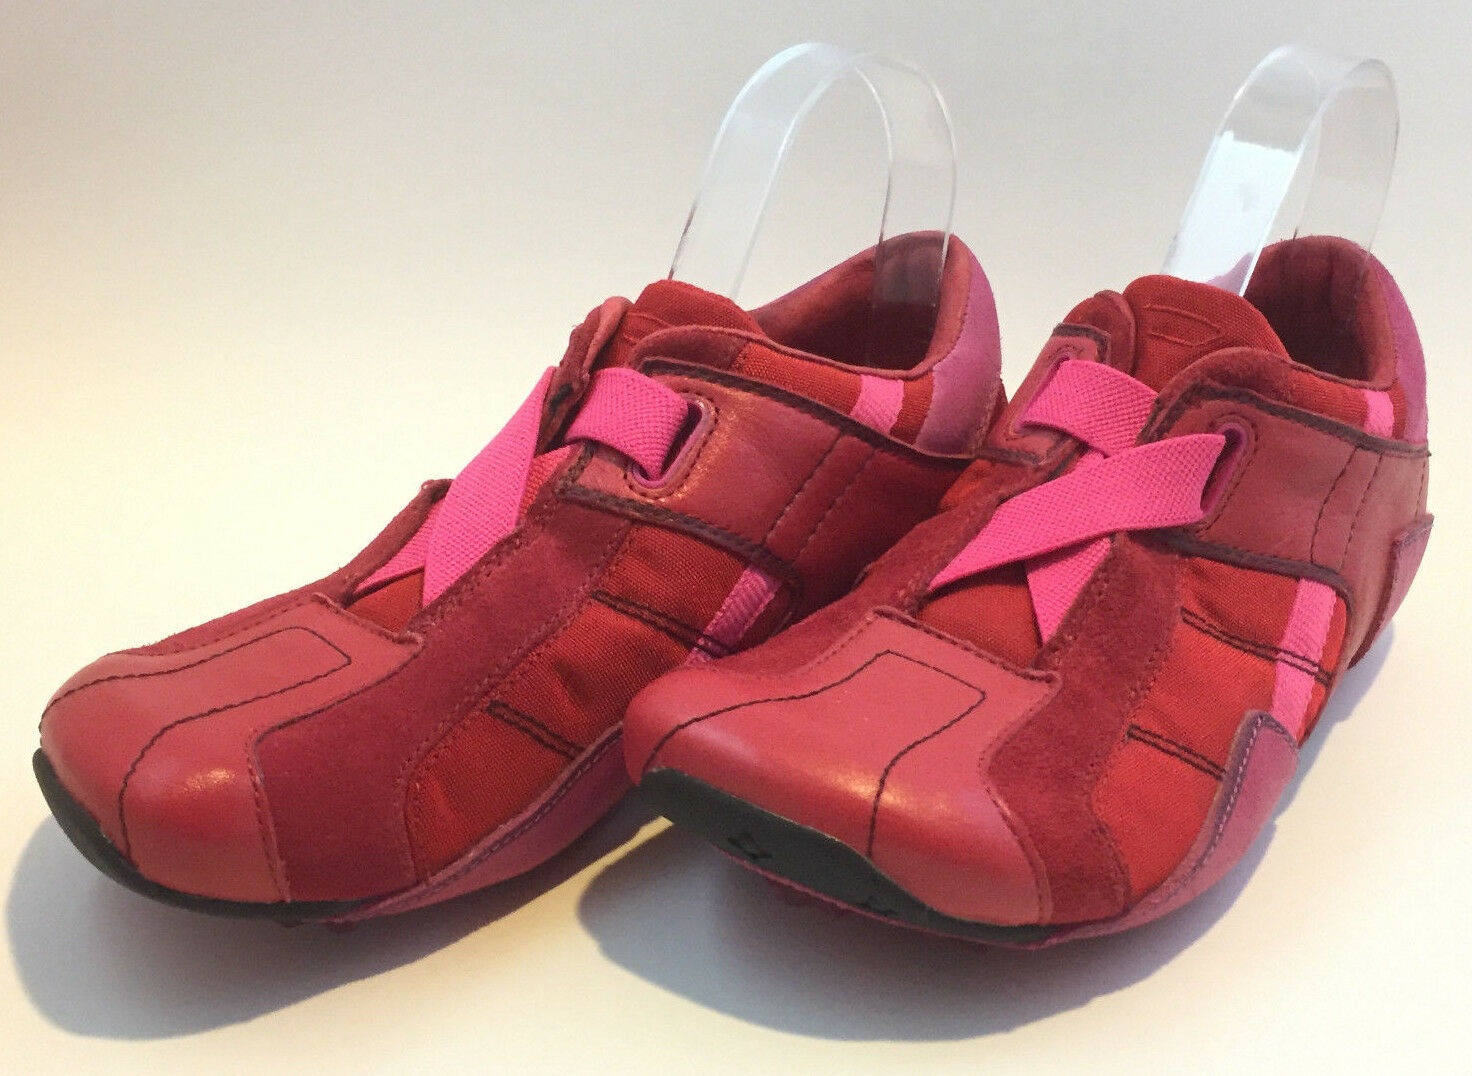 Diesel Mosley Women Pink & Red Leather Sneakers shoes Size 8 Elastic Closing